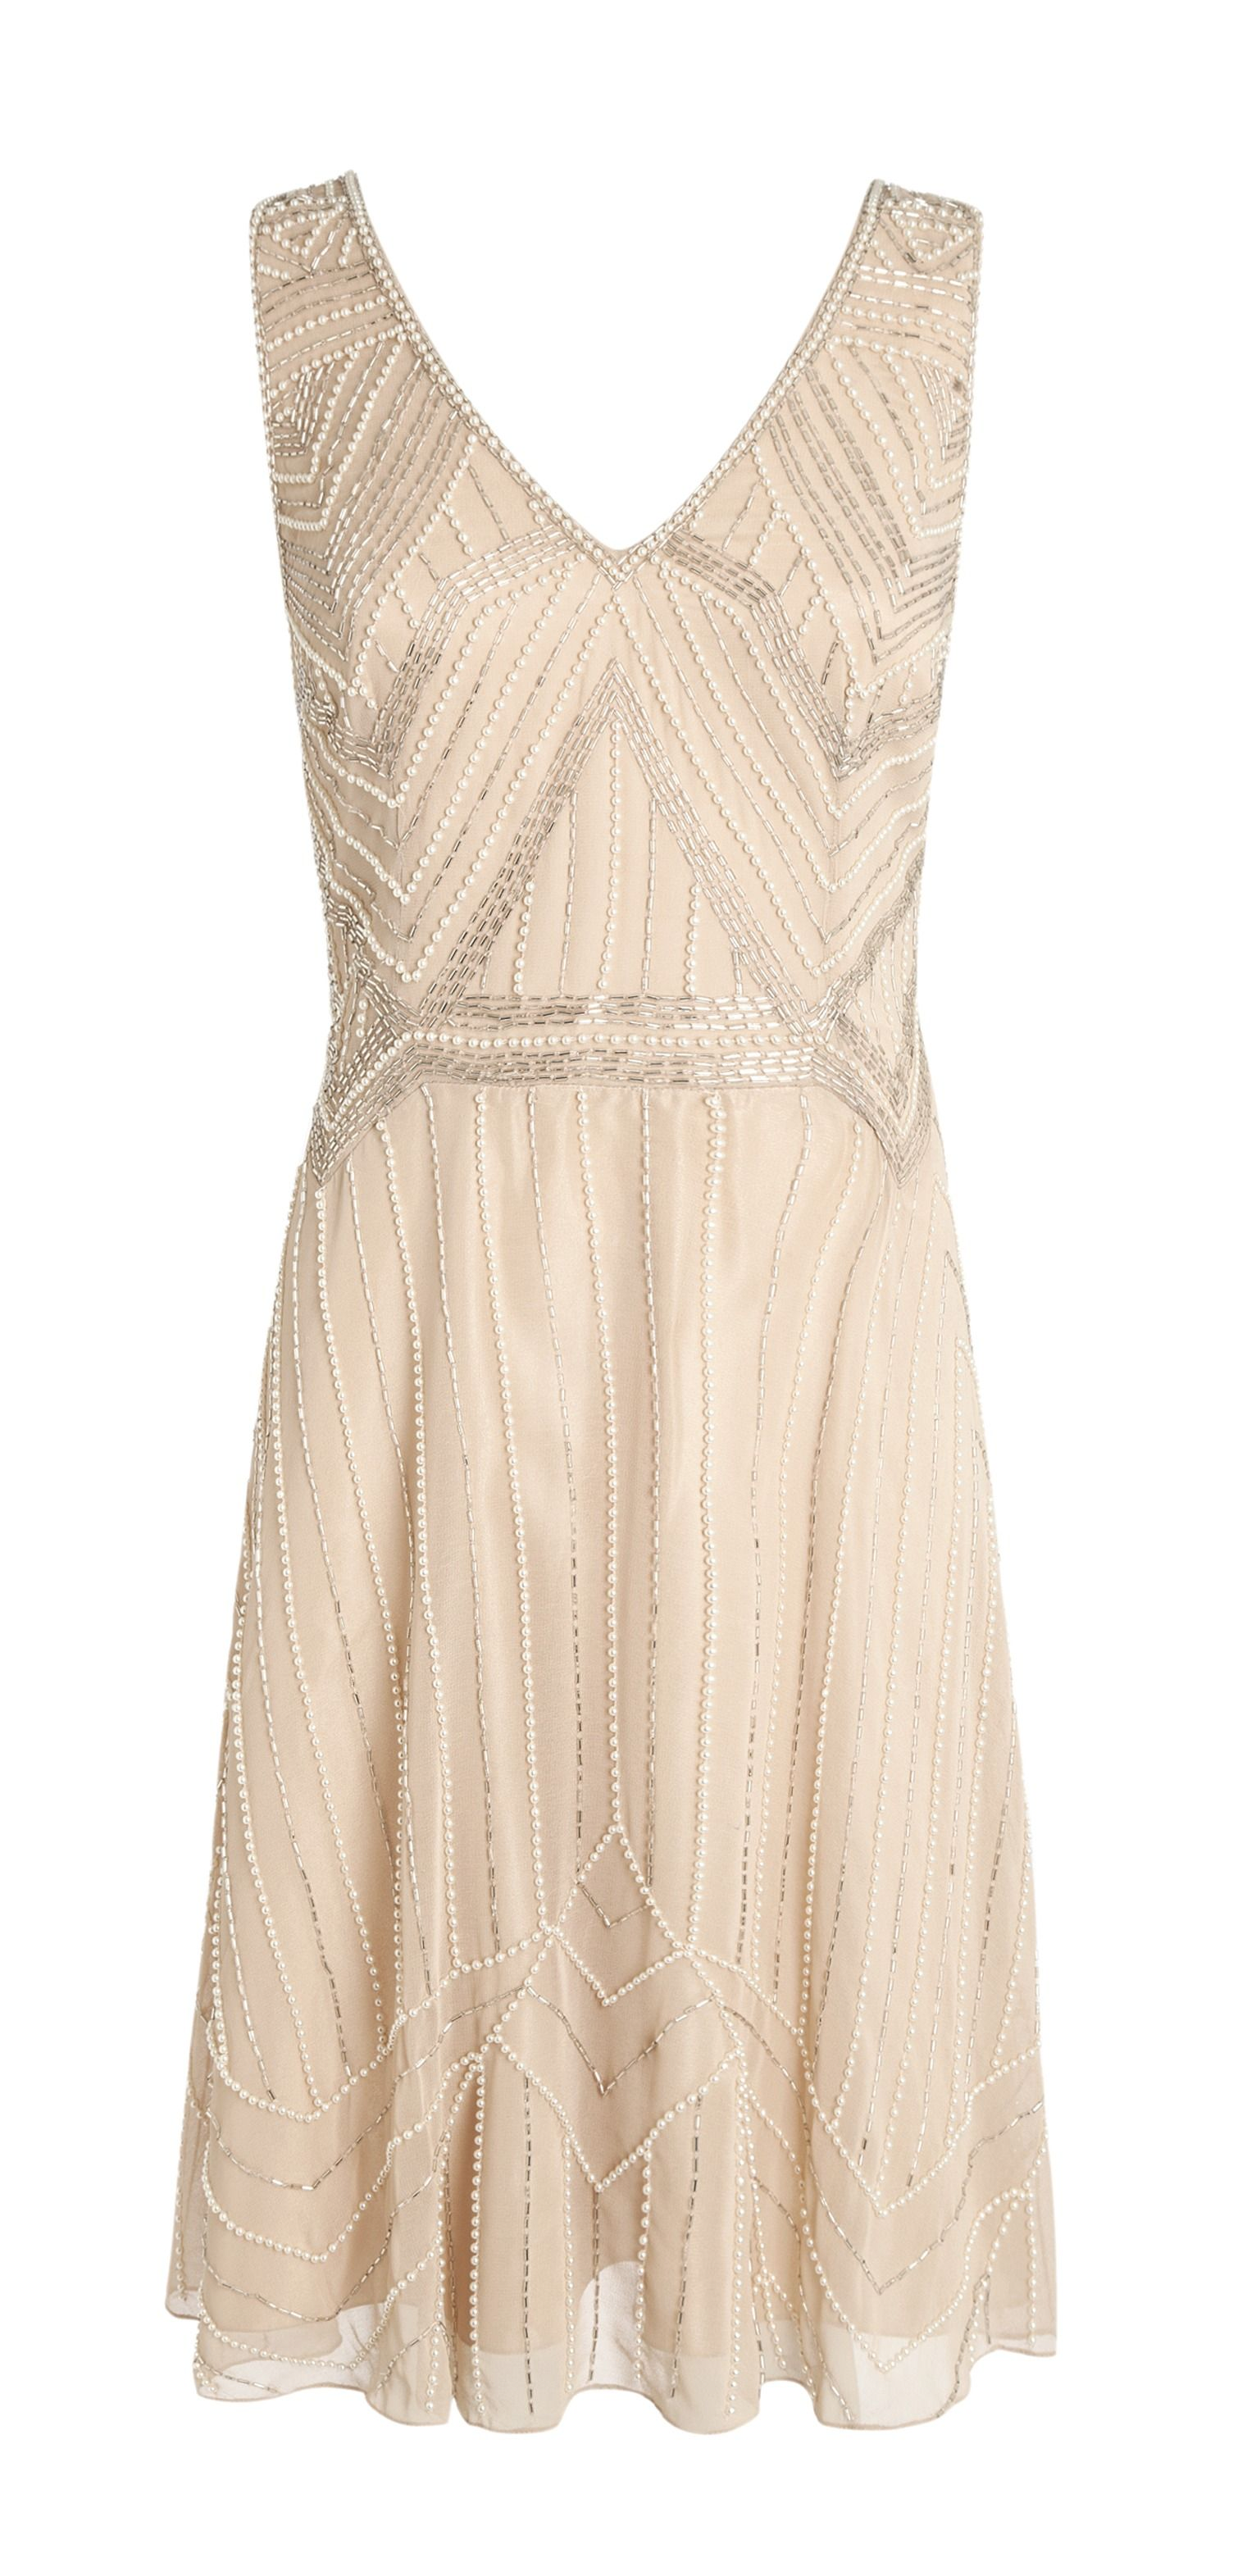 20 gorgeous high street bridesmaid dresses for 2015 jenny deco dress no1 jenny packham at debenhams ombrellifo Images